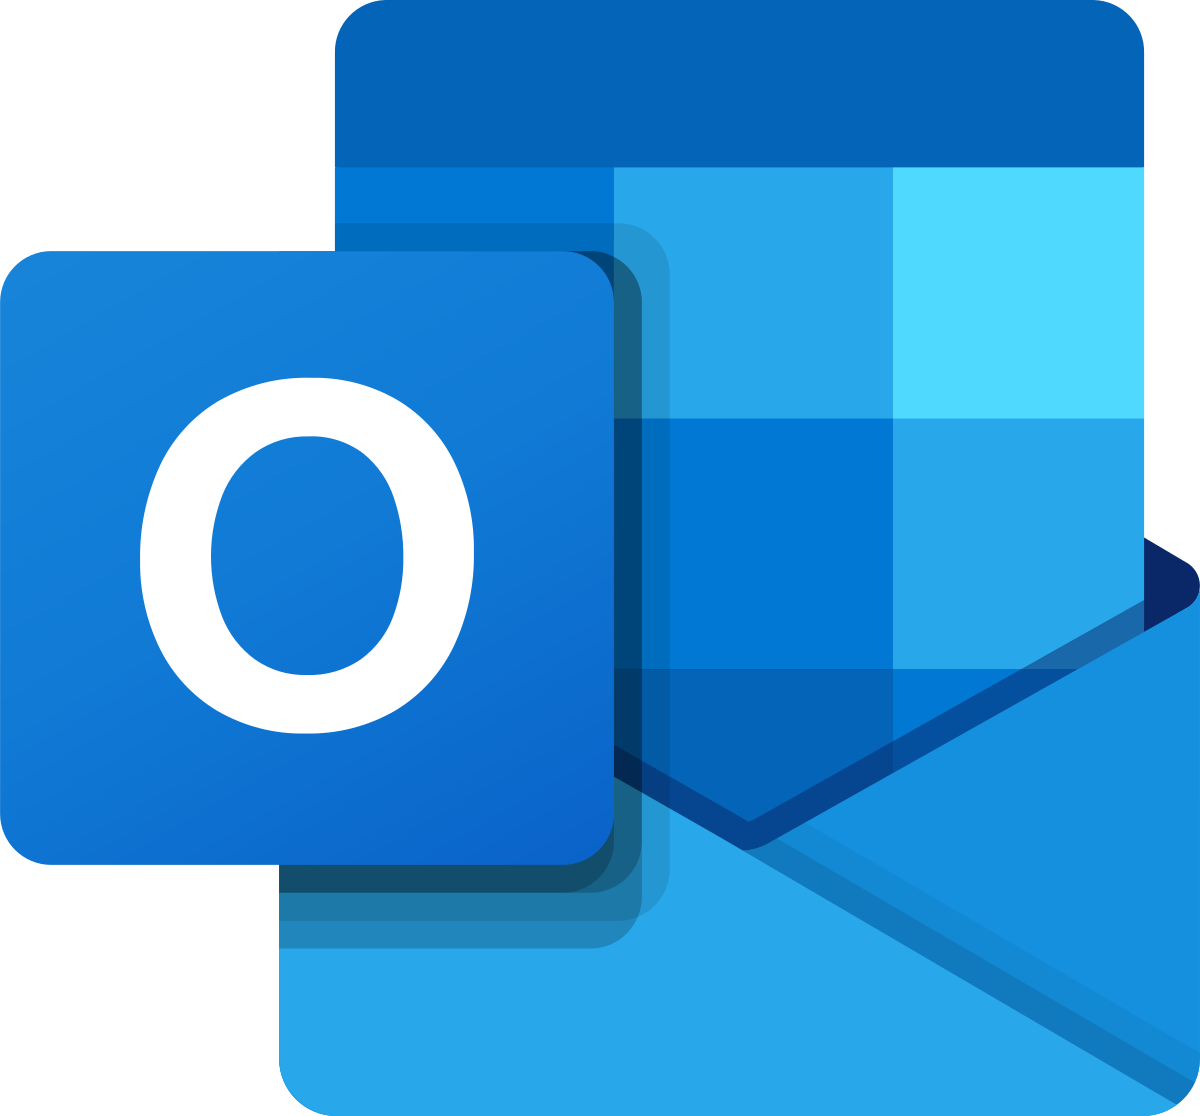 Outlook 365 icon